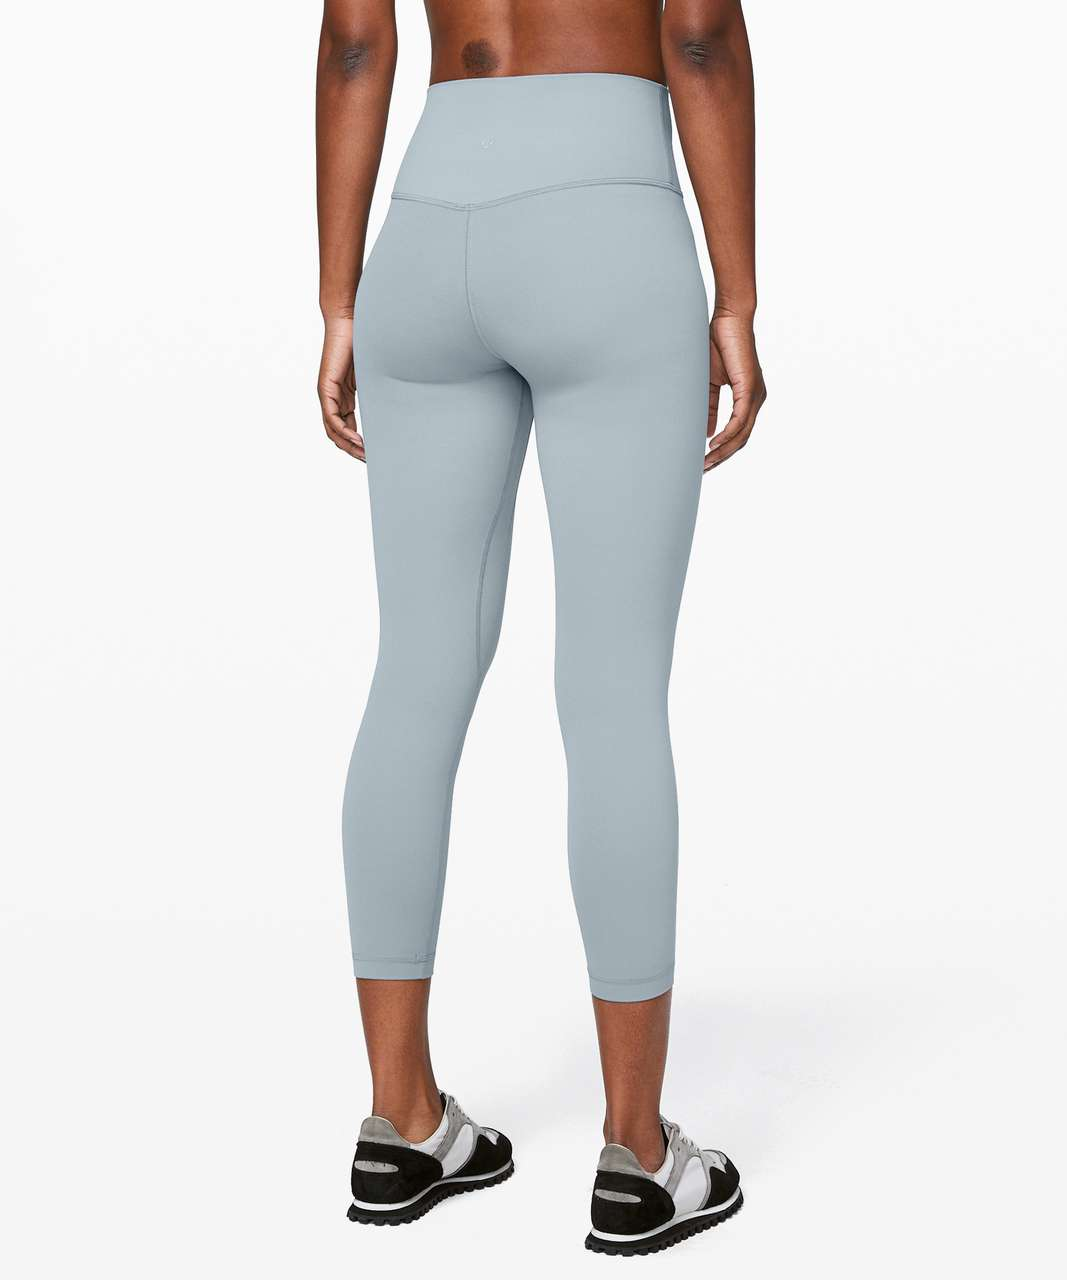 "Lululemon Align Pant II 25"" - Chambray (First Release)"